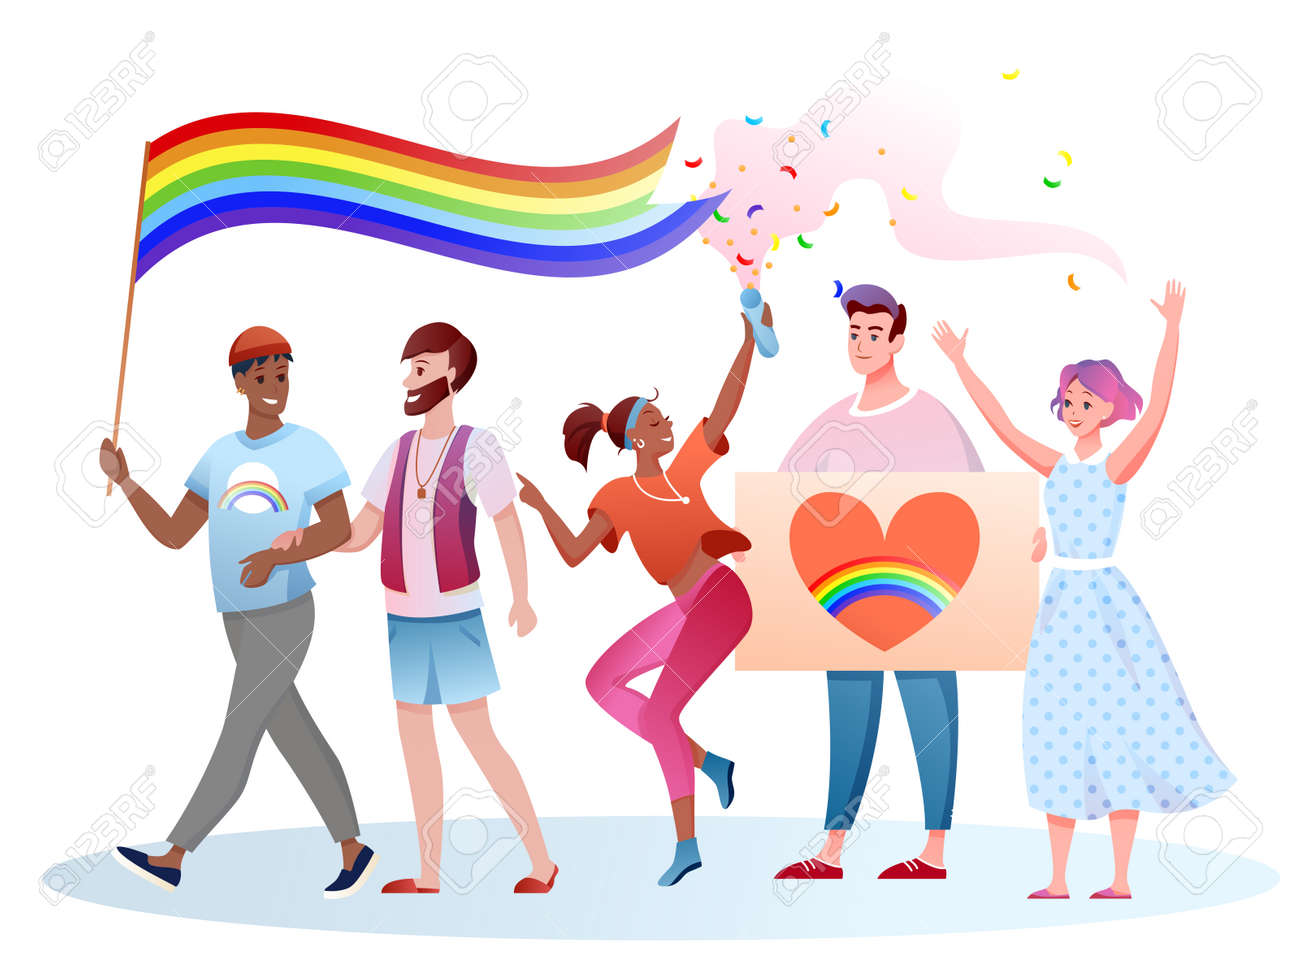 LGBT pride parade vector illustration. Cartoon flat happy and people take part in festival parade for human rights, holding LGBT rainbow flag in hands - 152370286